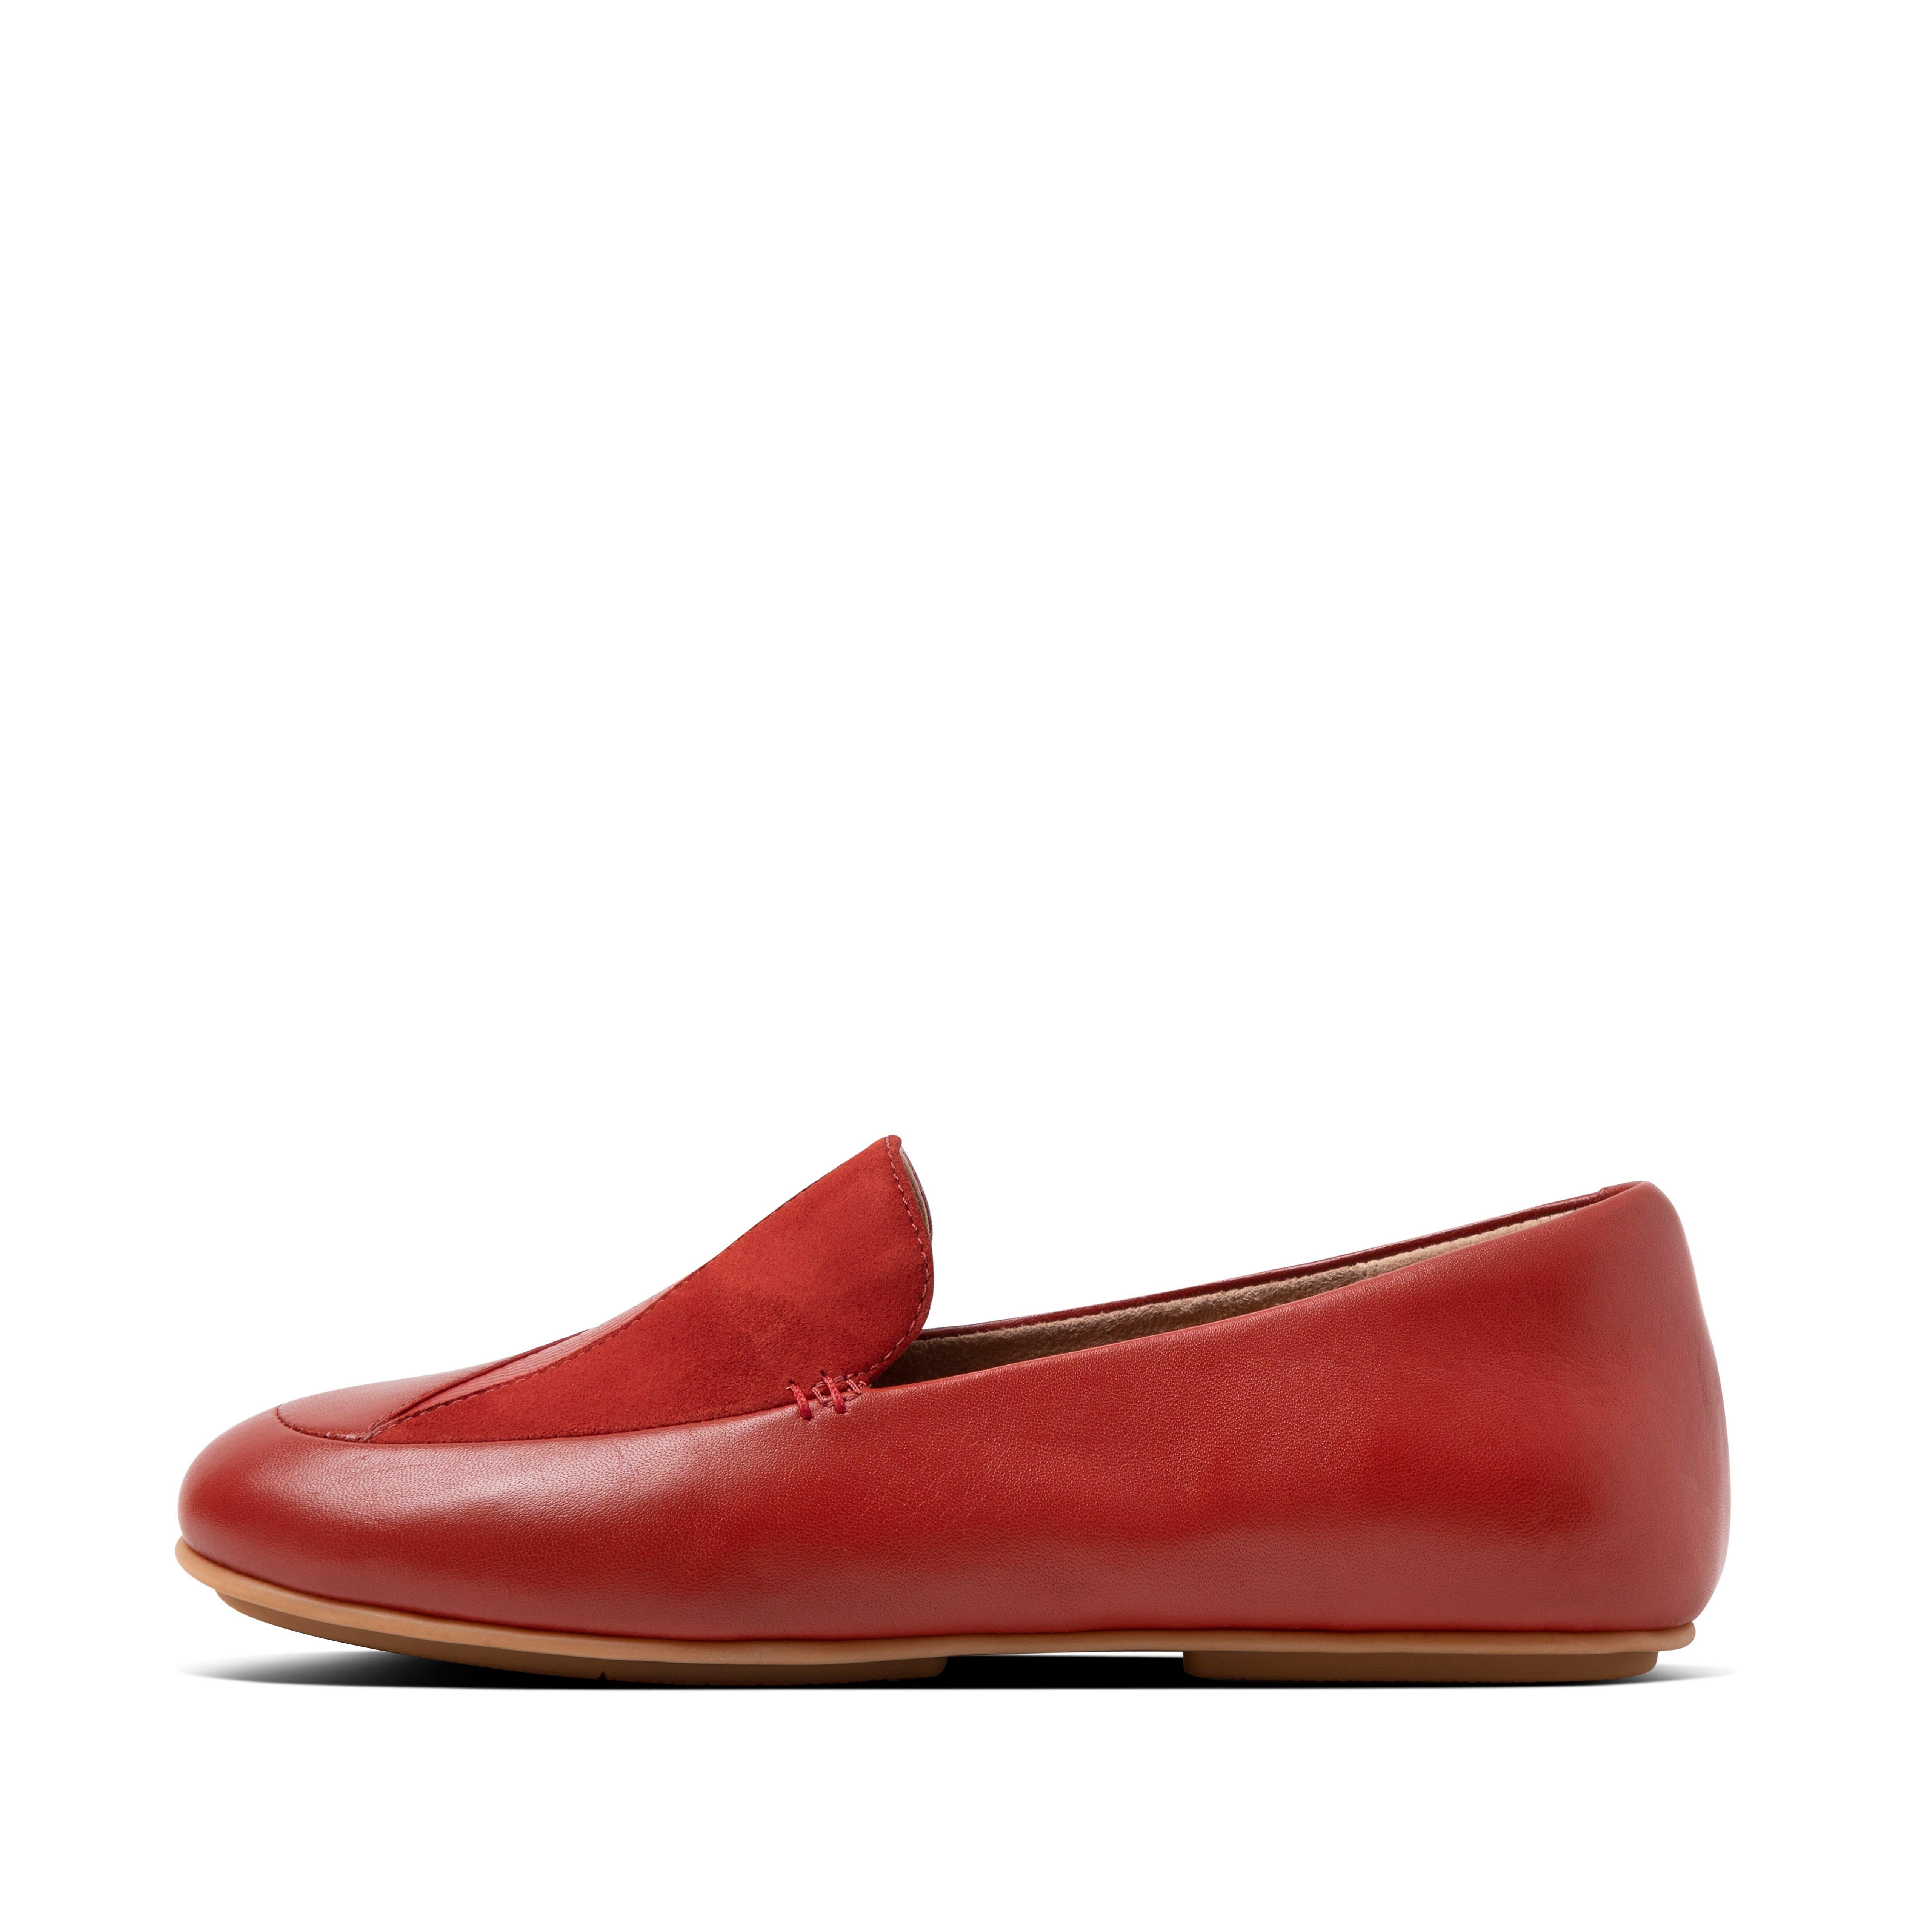 Our Lena loafers are ultimate proof that less is more. Ultra-sleek, featherlight, with an androgynous aesthetic, these\\\'ll add class to every outfit you wear them with. Yet they deliver major comfort thanks to their anatomically shaped footbed and our high-rebound Dynamicush™ cushioning hidden in a classic \\\'flat sole\\\'. This season in soft leather, with the front section mixing suede, smooth and lizard-embossed leathers.